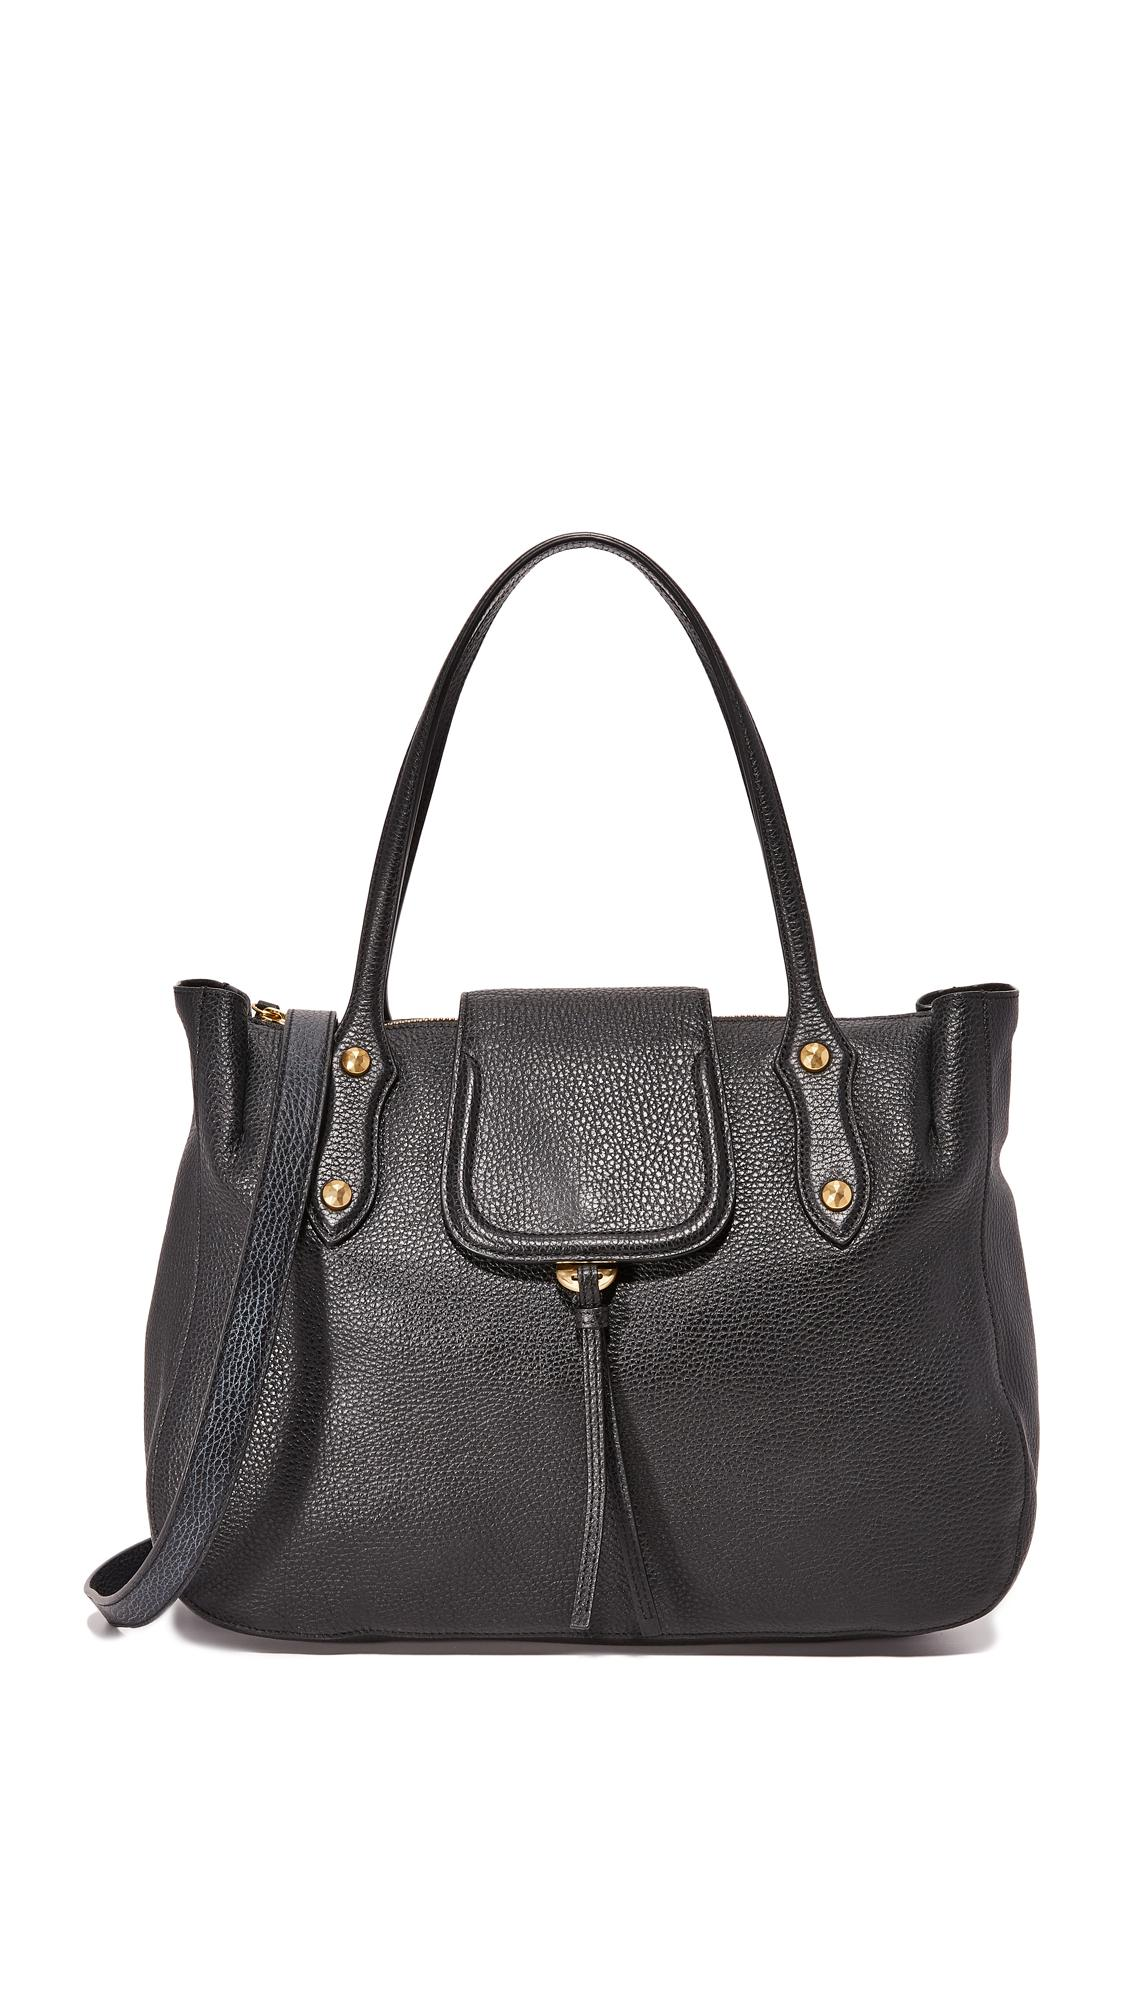 e20855b1e8 Gallery. Previously sold at  Shopbop · Women s Black Satchels ...